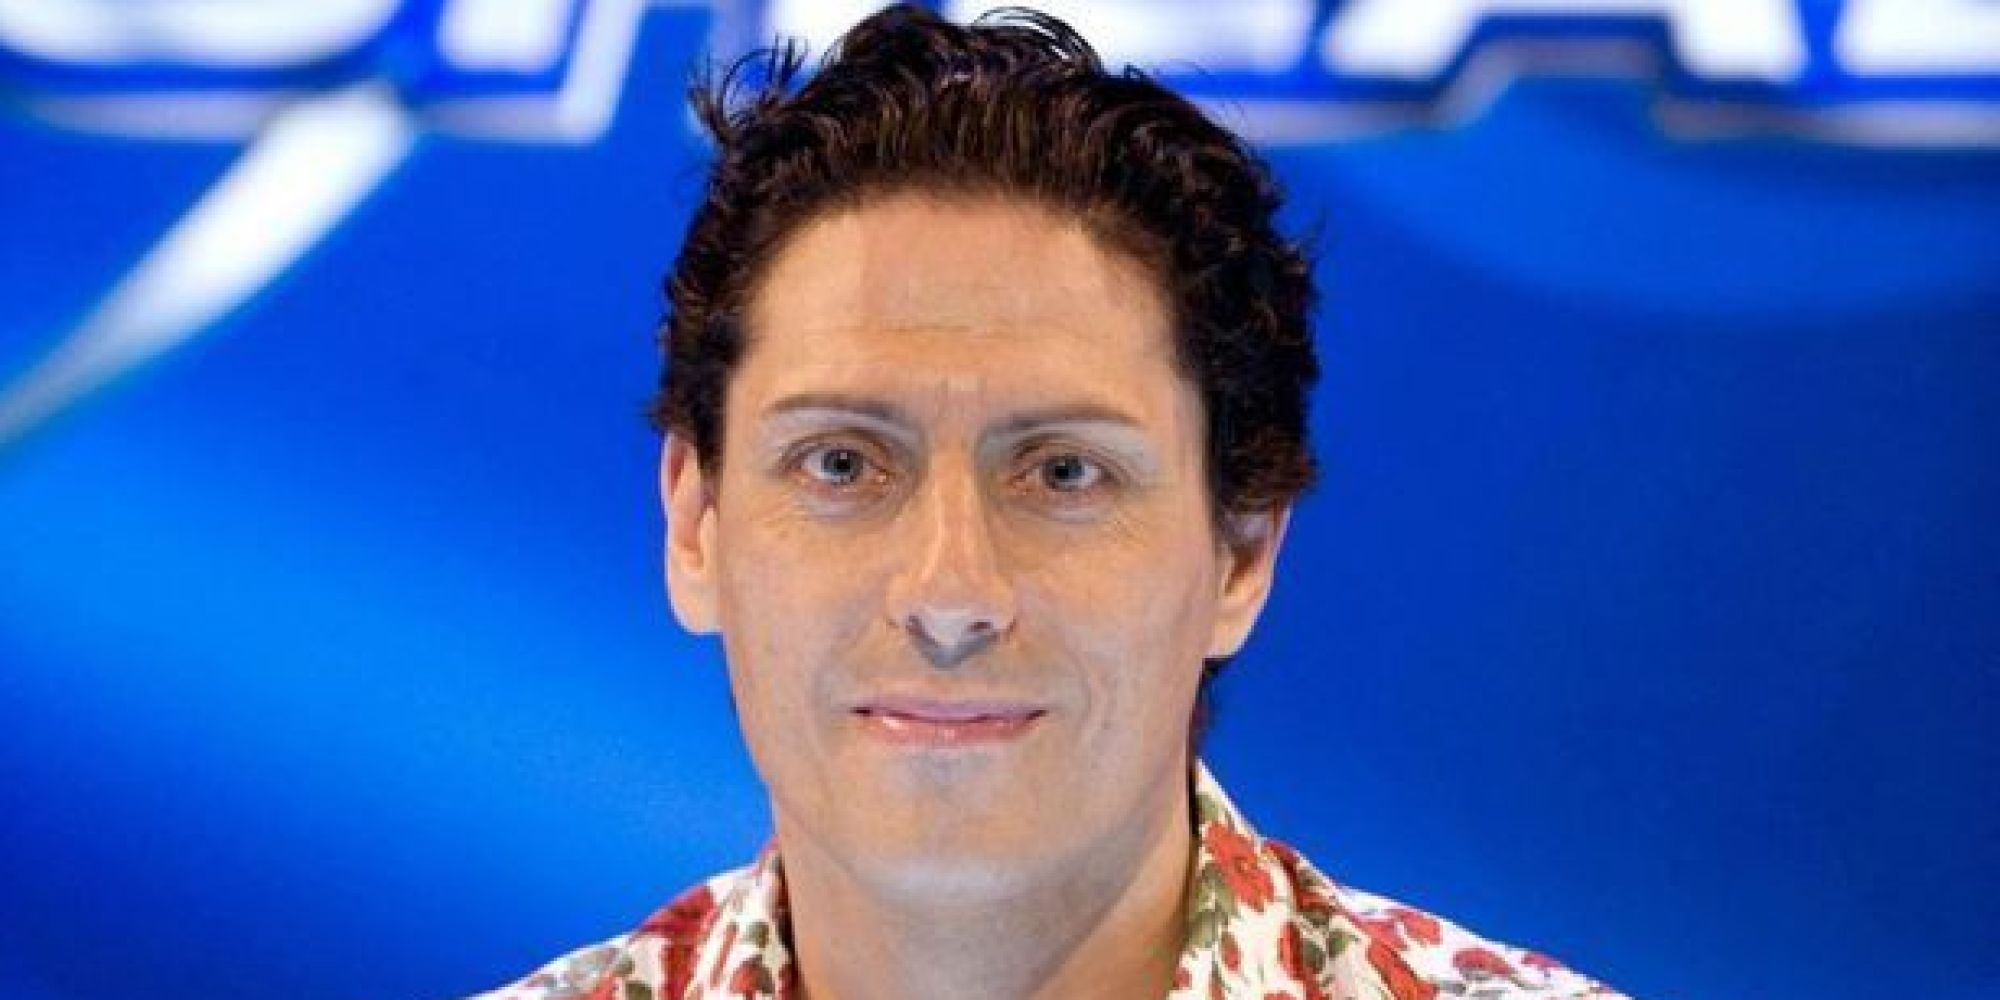 Former Eggheads star CJ de Mooi has revealed he's dying of AIDS. (Credit: BBC)